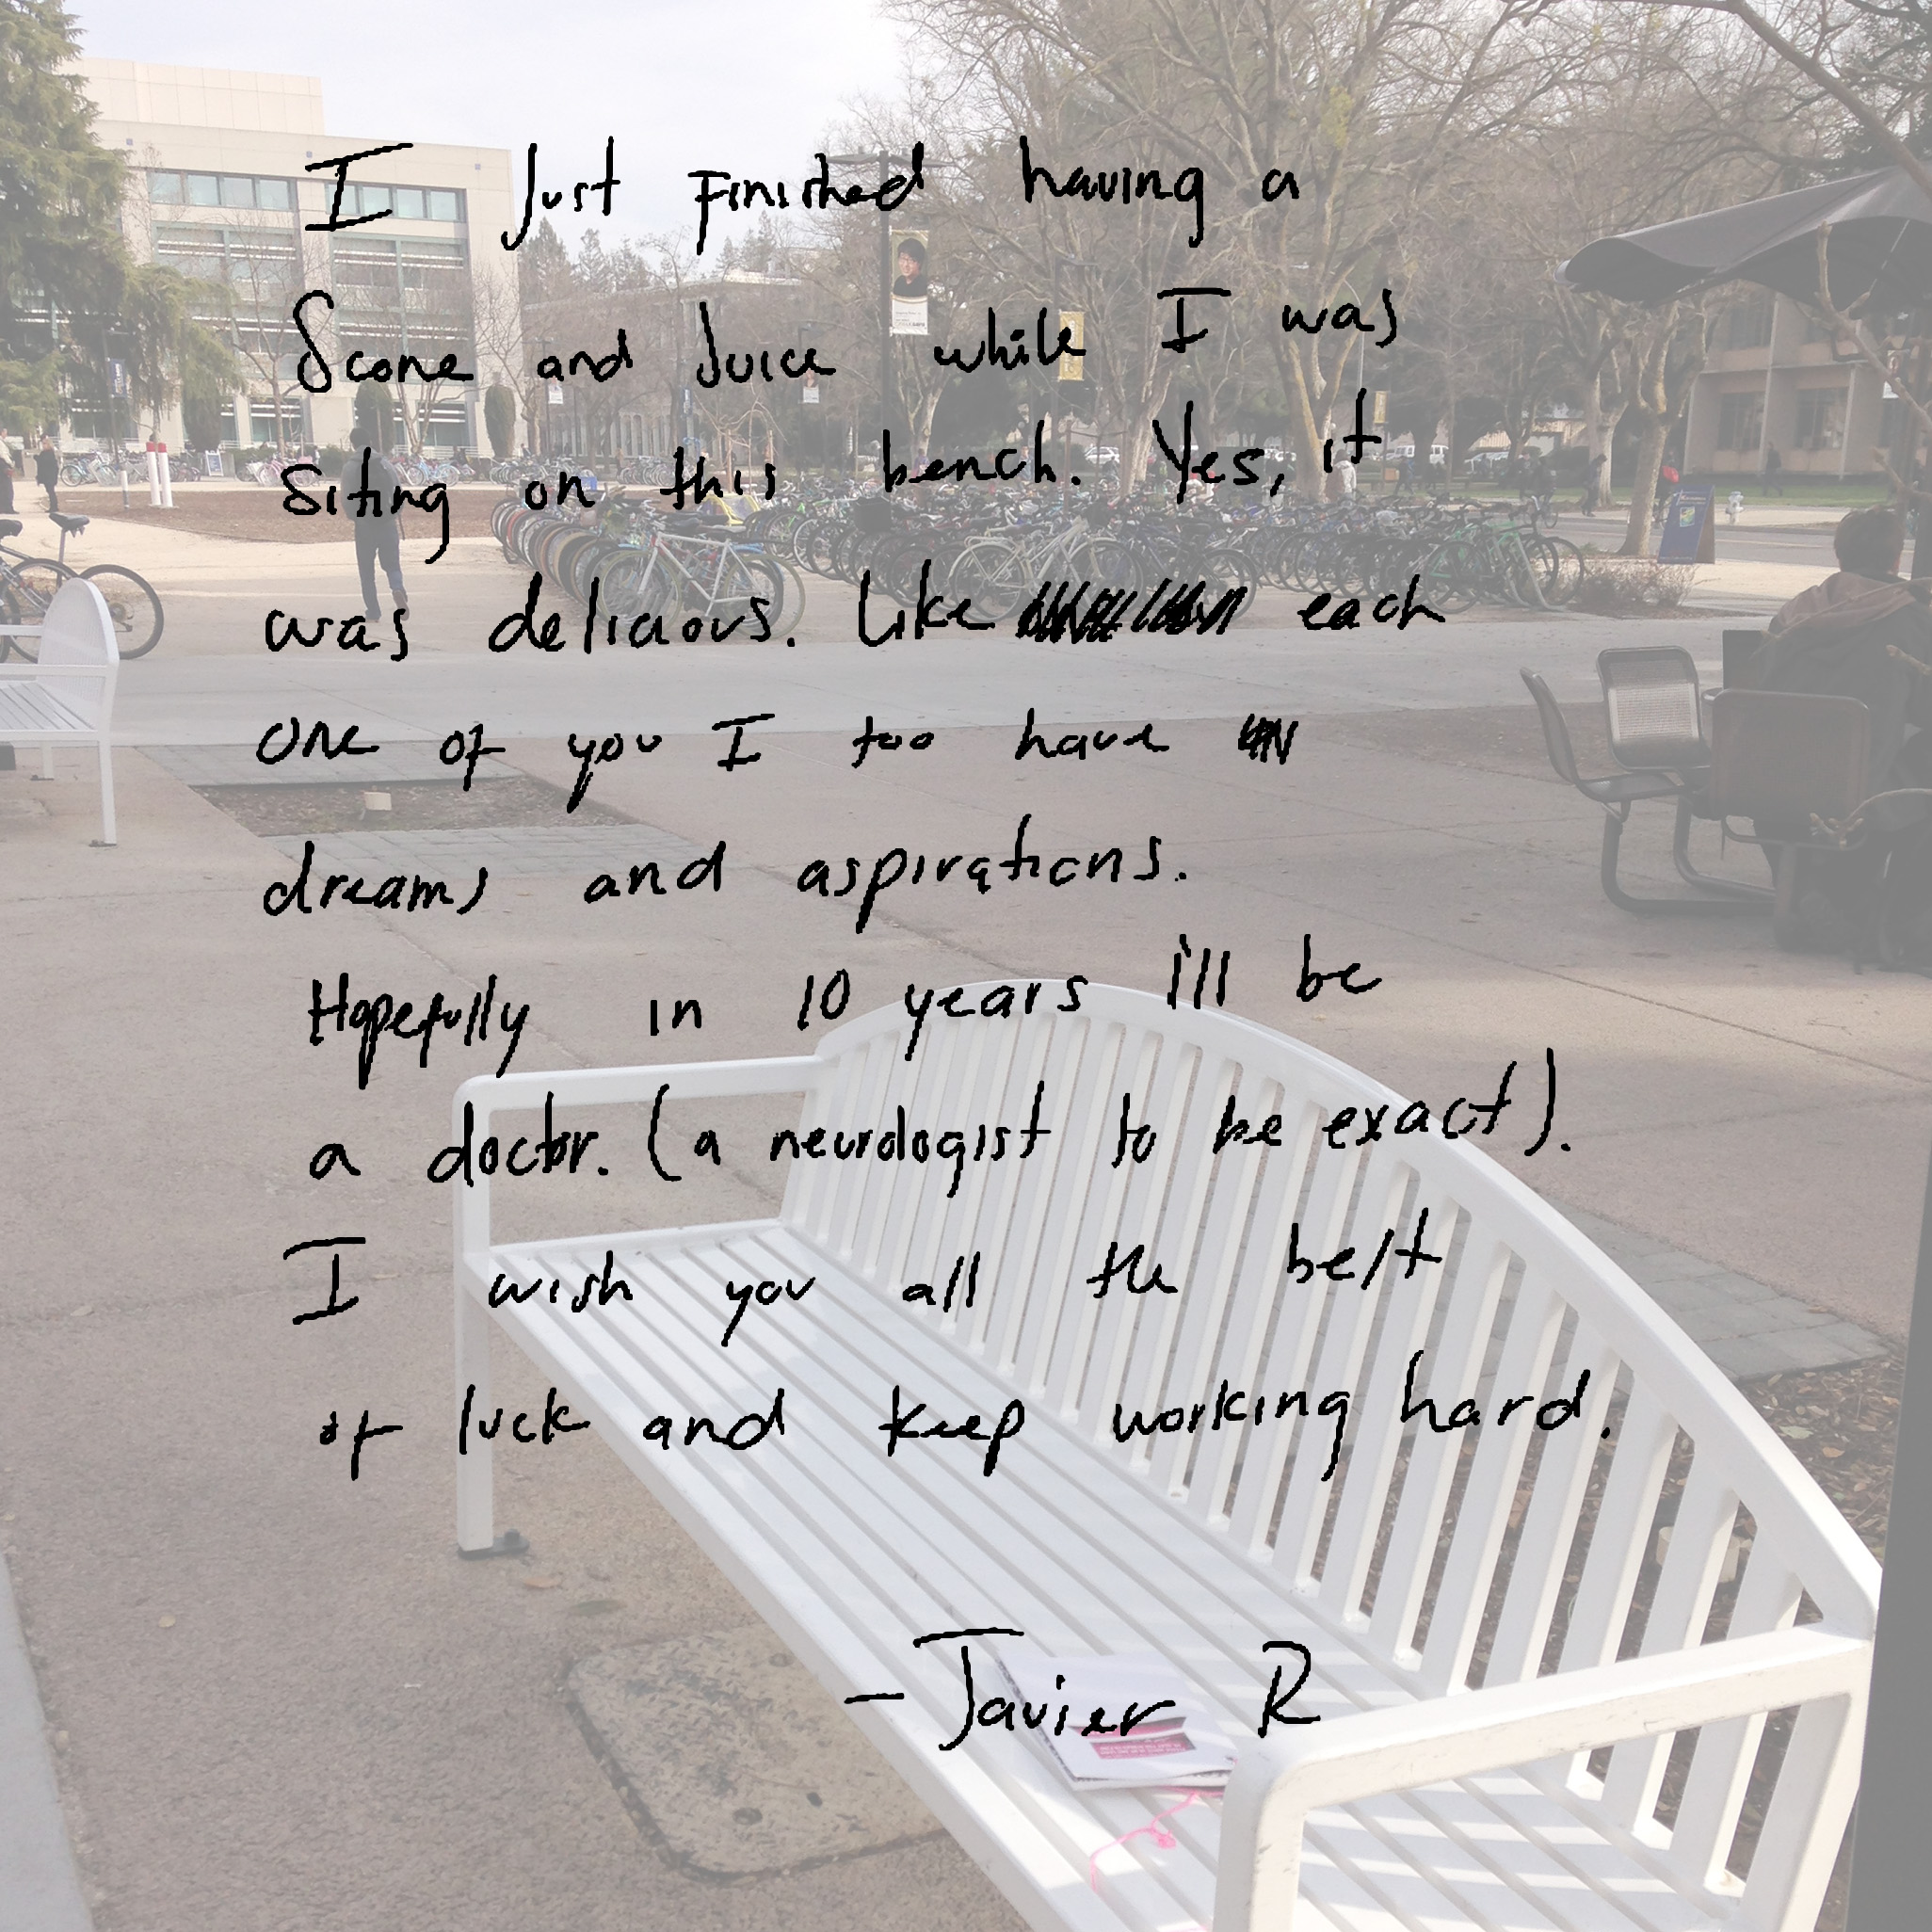 I just finished having a scone and juice while I was sitting on this bench. Yes, it was delicious. Like each one of you I too have dreams and aspirations. Hopefully in 10 years I'll be a doctor (a neurologist to be exact). I wish you all the best of luck and keep working hard.   -Javier R